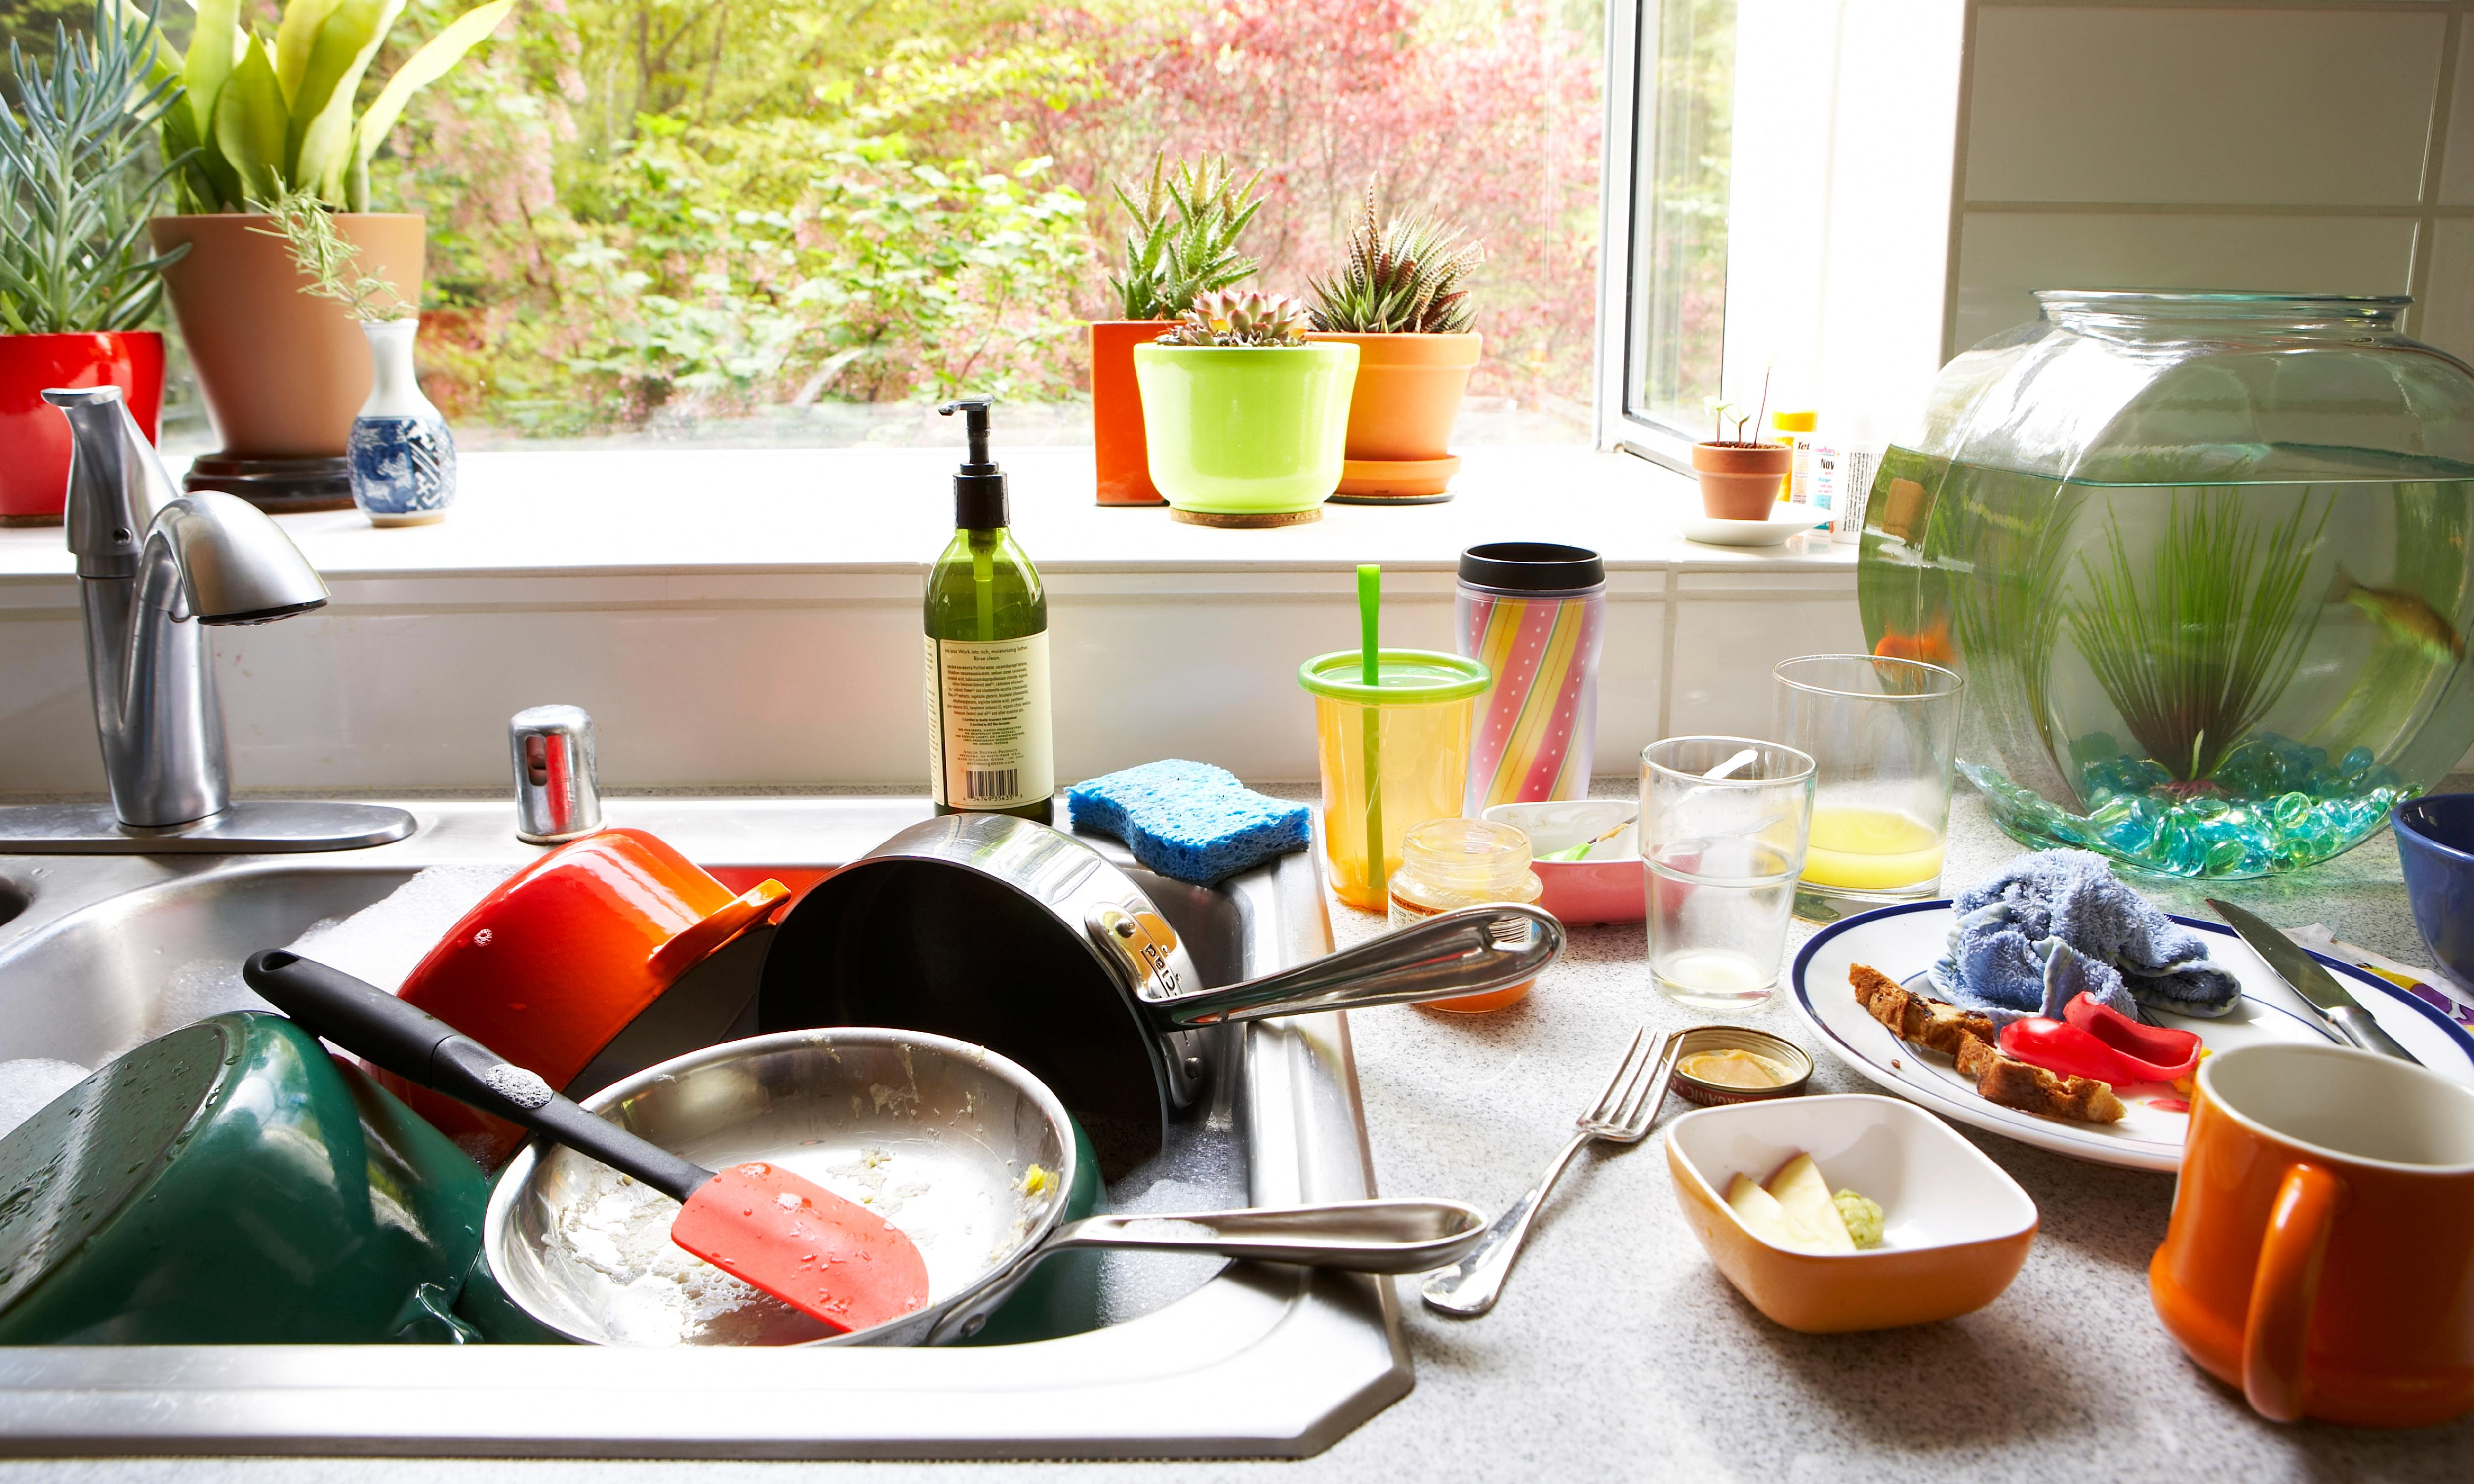 Gwyneth Paltrow won't allow it – but is it dangerous to leave dishes unwashed overnight?